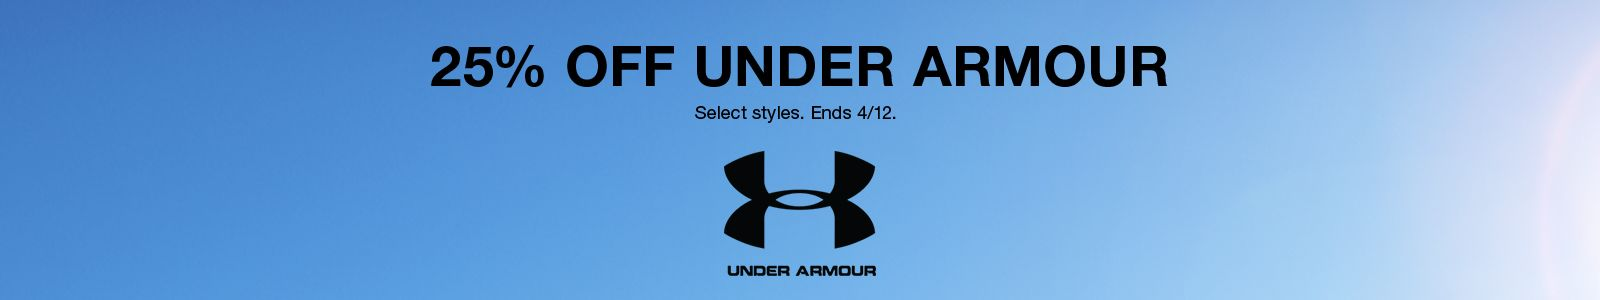 25% Off Under Armour, Select styles, Ends 4/12, Under Armour